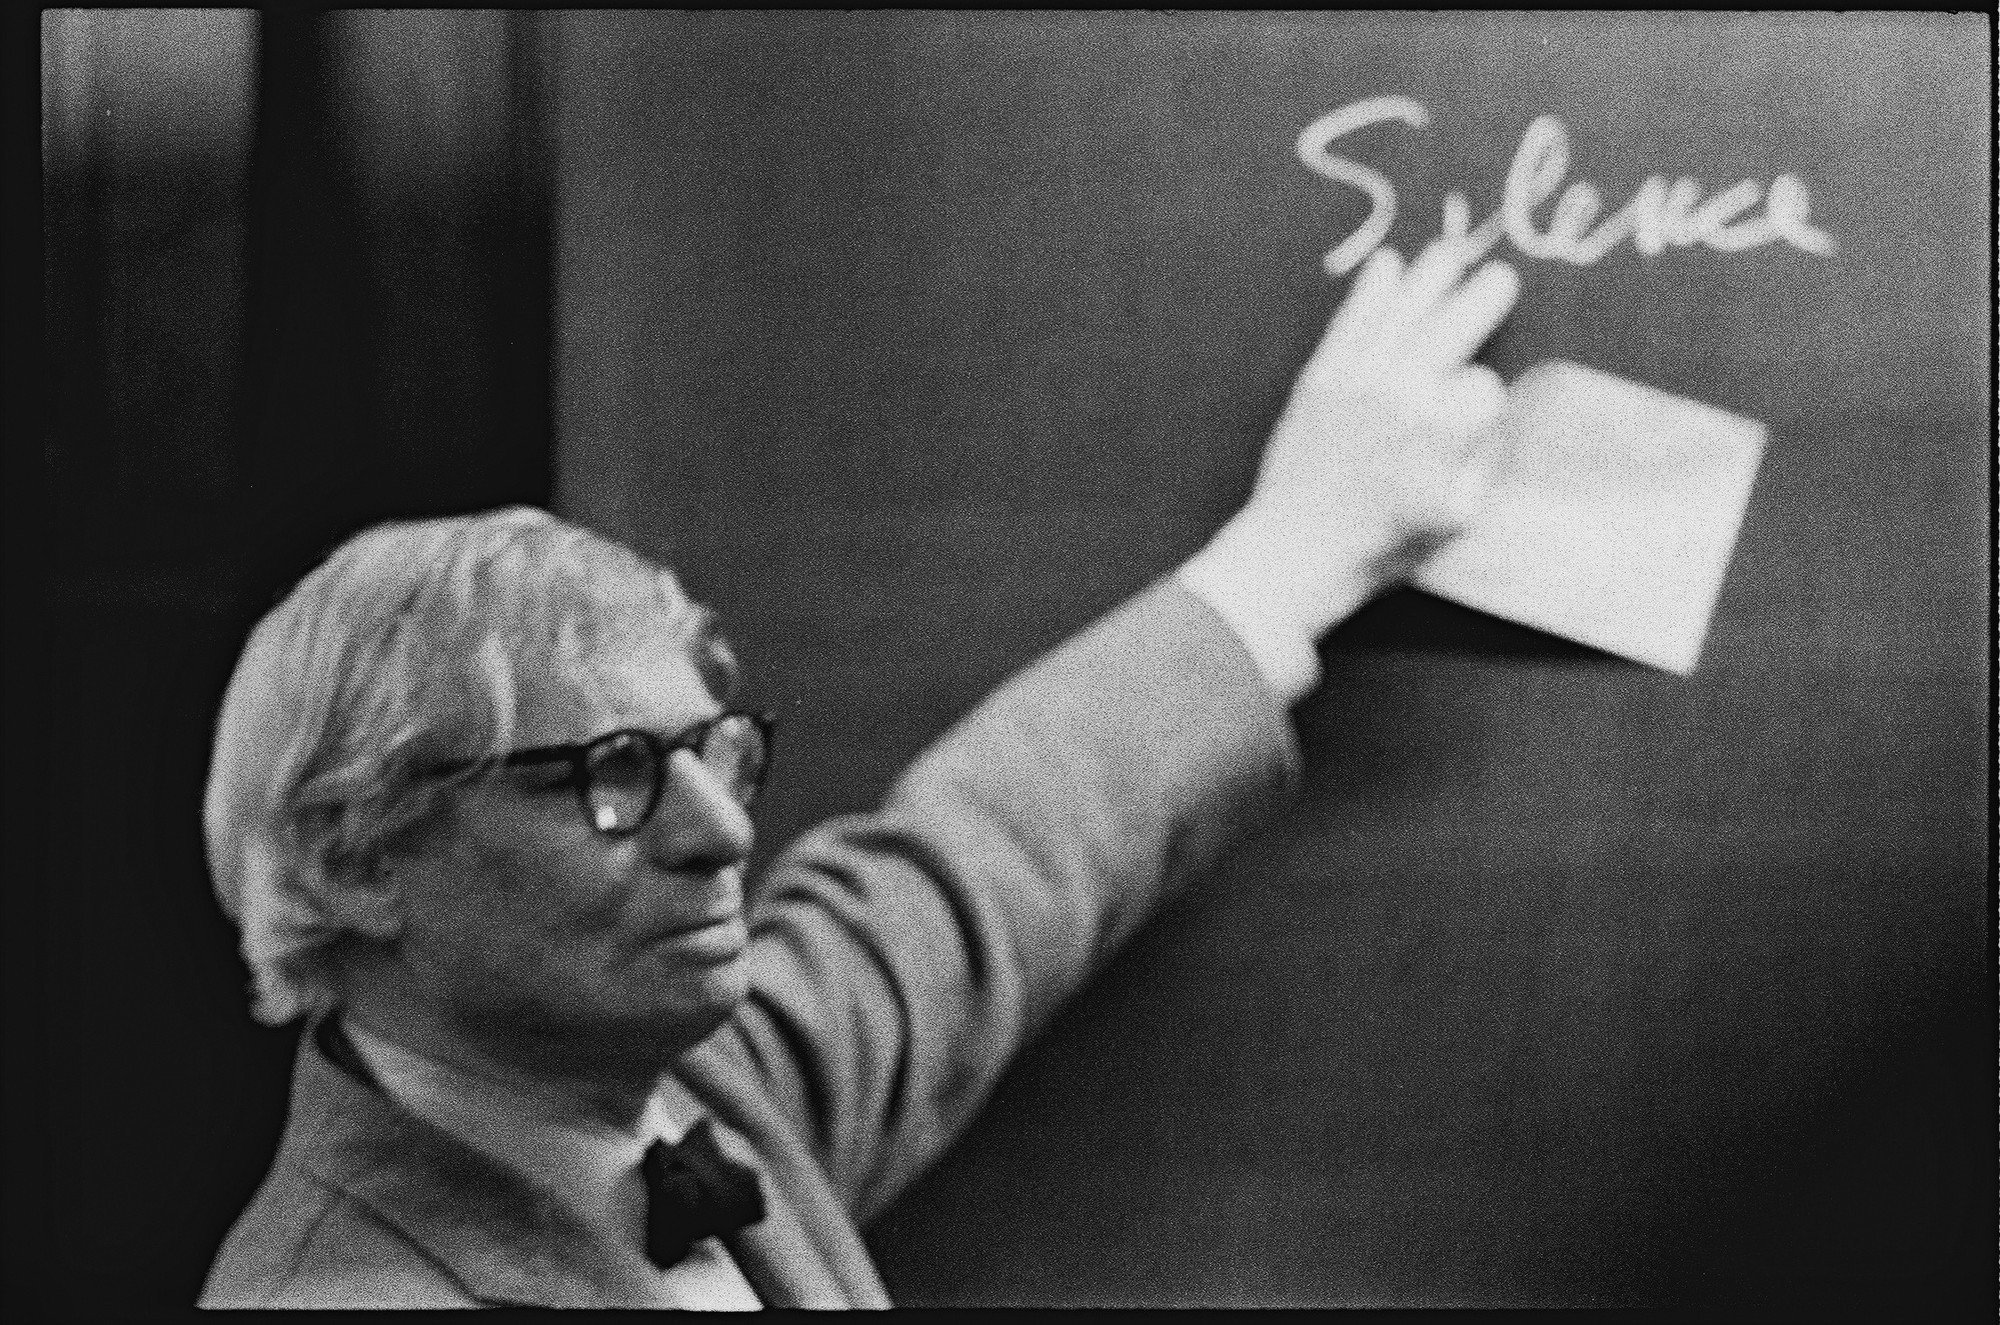 Louis I. Kahn during the lecture at the ETH Zurich. Photographs by Peter Wenger © Archives de la construction moderne – Acm, EPF Lausanne